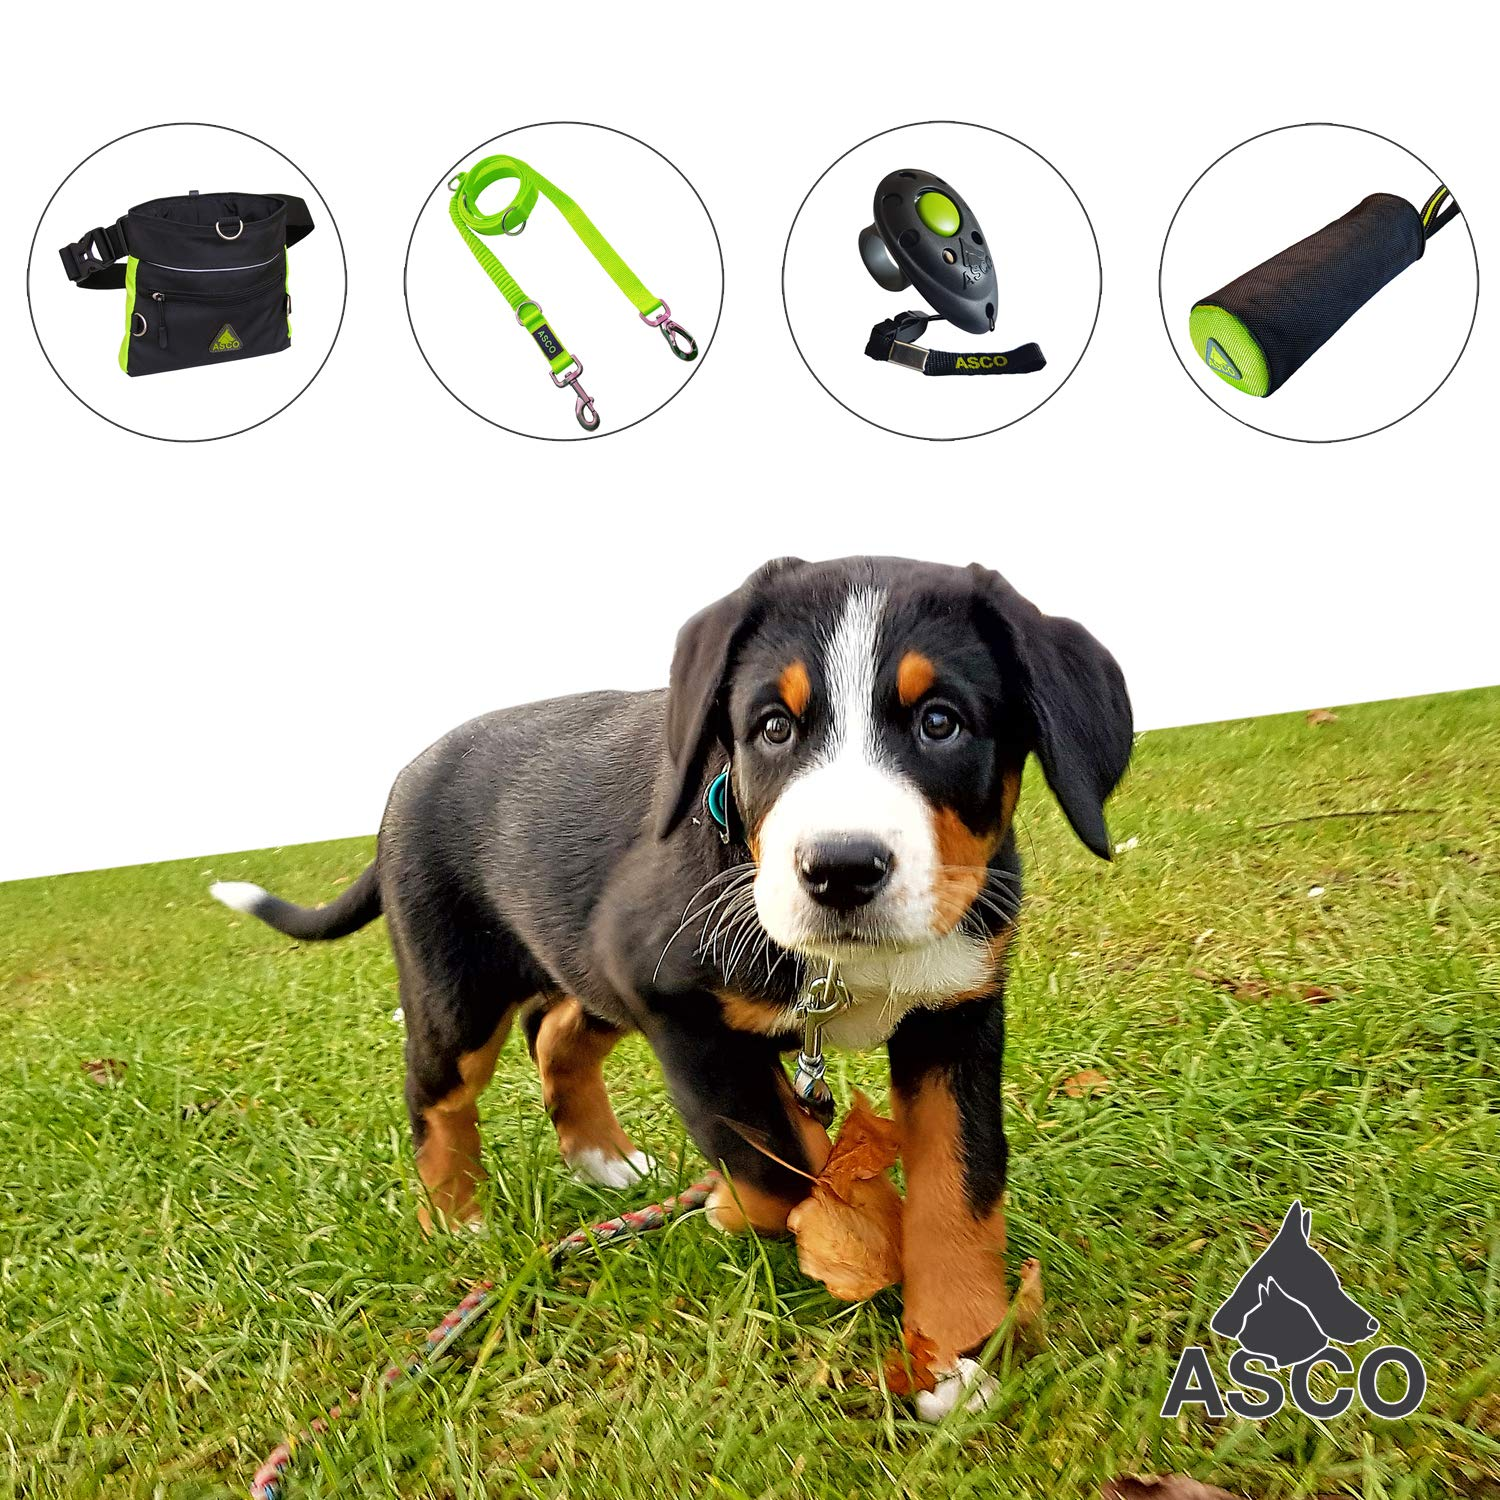 Dog Horse Training Treat Pouch with One Hand Opening System Prime Agility Waist Bag 20 x 20 cm AC60TB black green ASCO Treat Bag